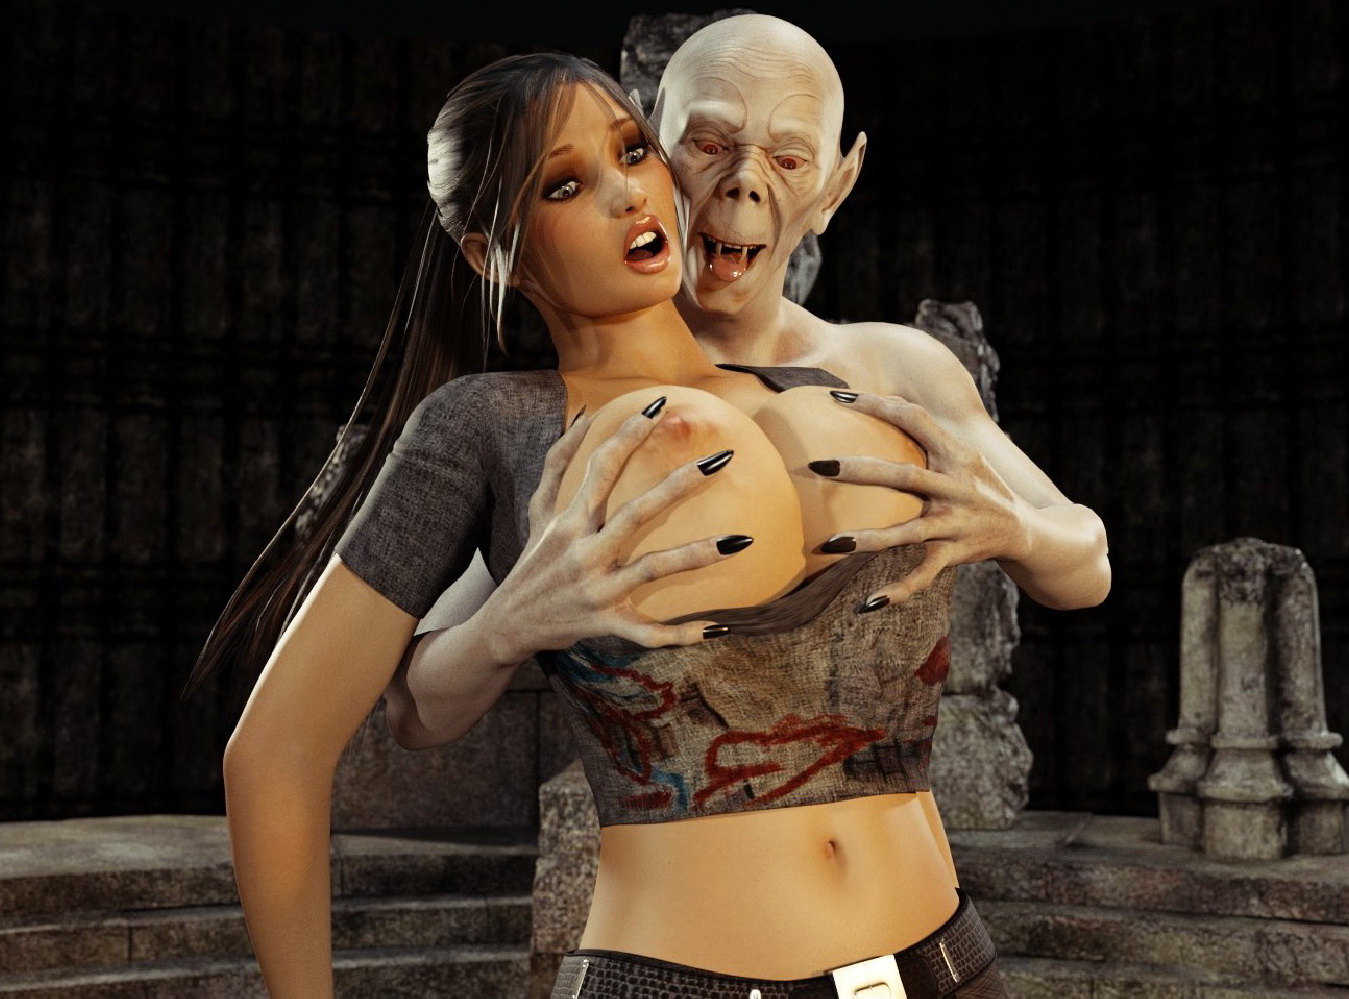 Lara croft fucked by vampire gallery sexy videos